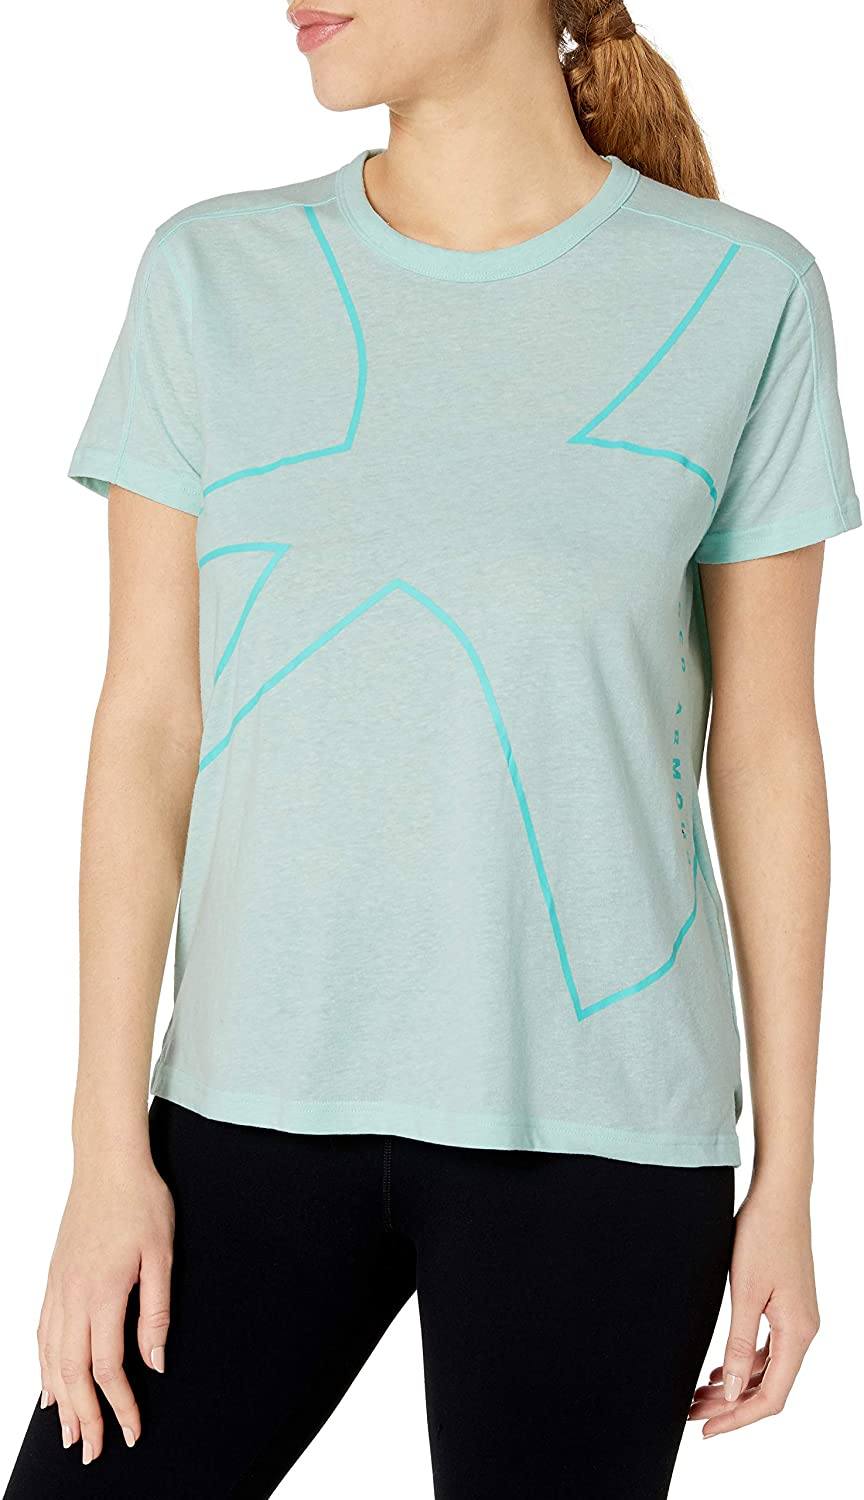 Under Armour Women's Tri-Blend Graphic Short Sleeve